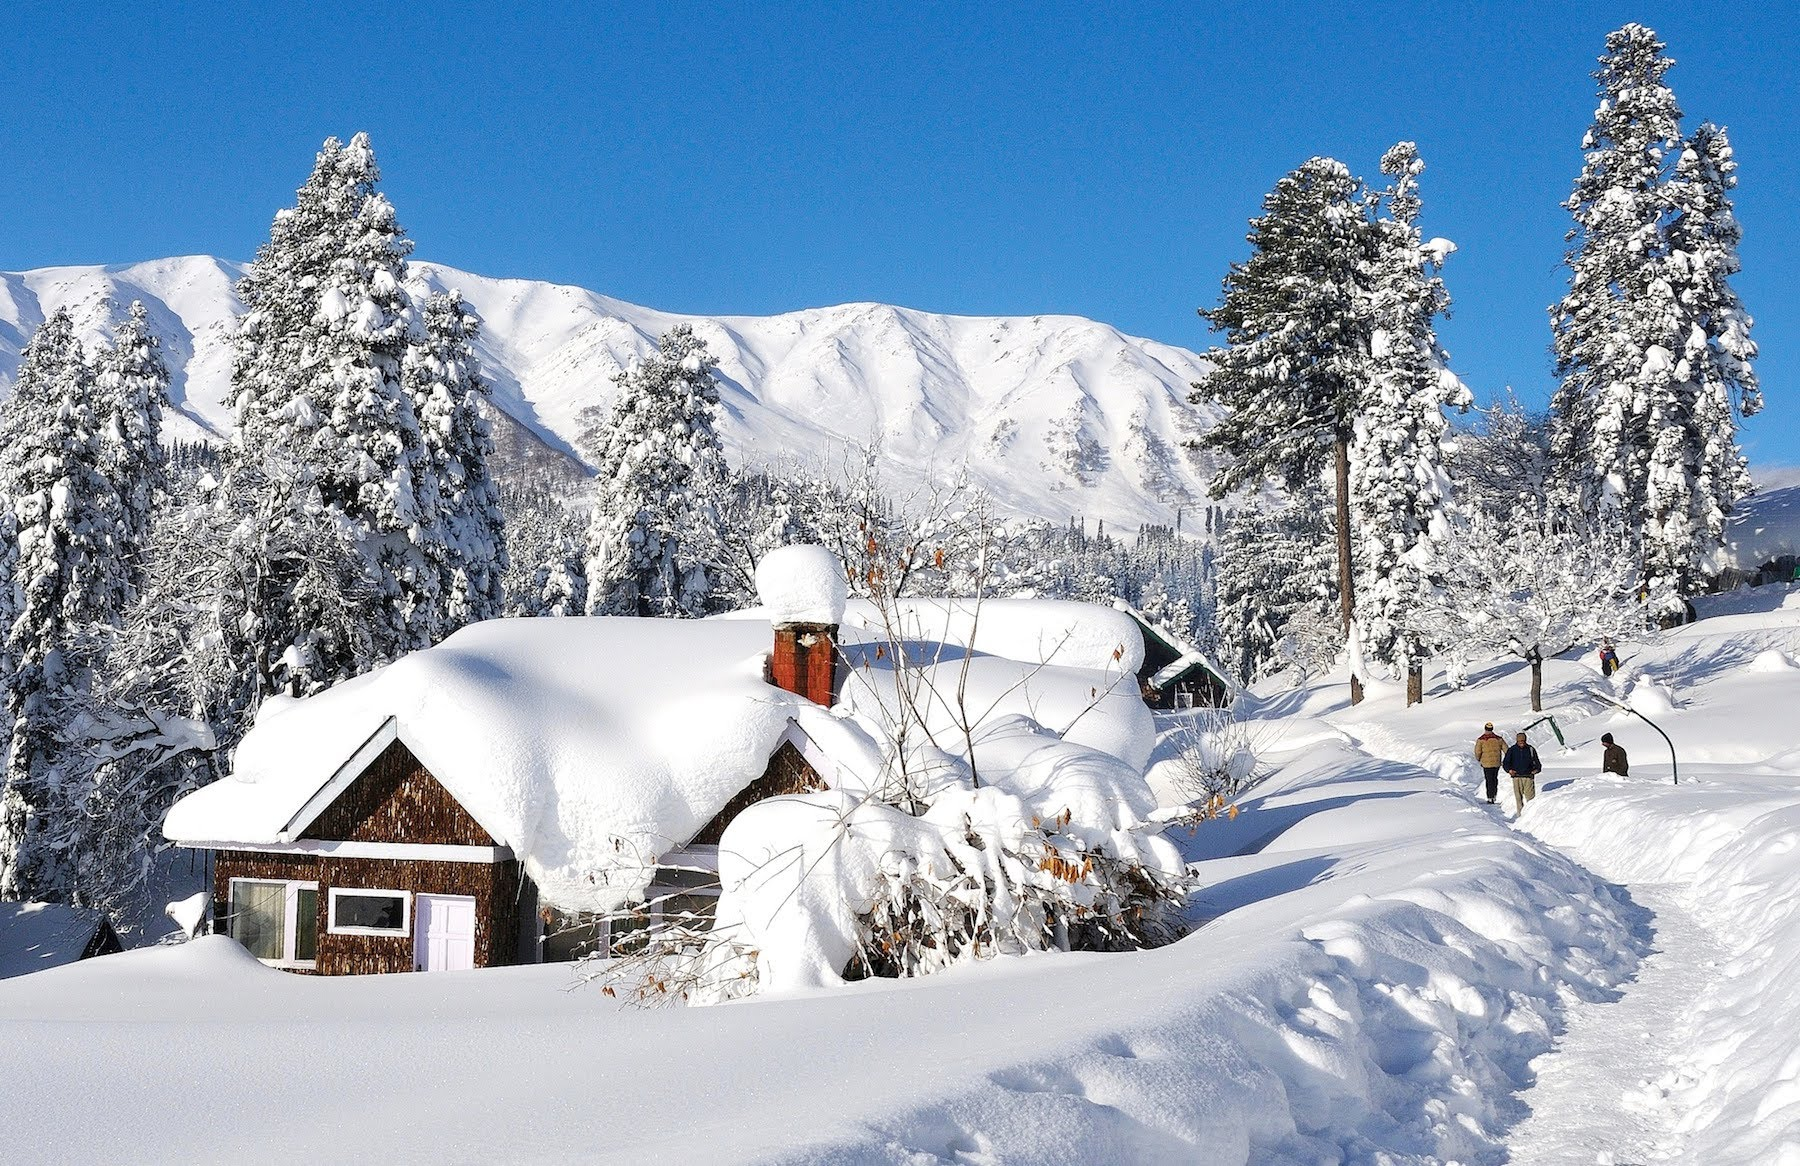 Top 5 Best Tourism destinations to See Snowfall during